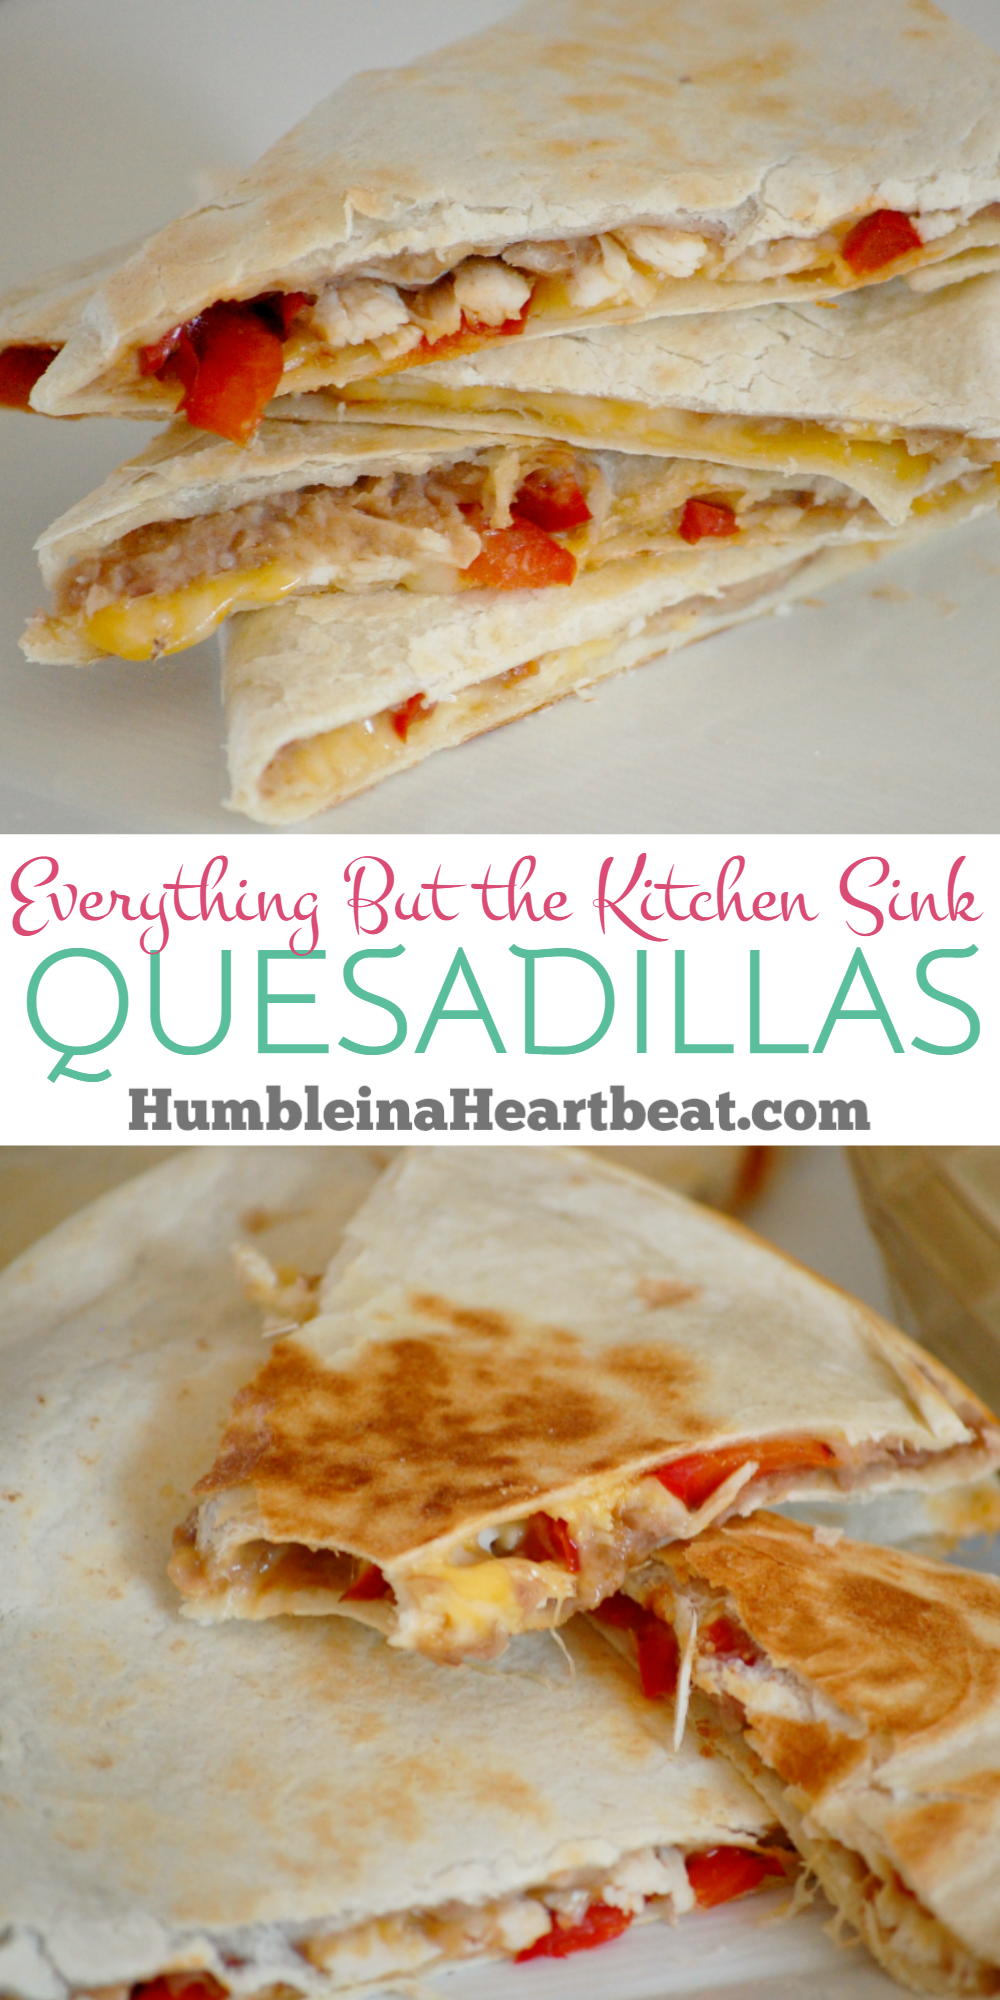 Everything But the Kitchen Sink Quesadillas are a great way to use up leftover food. Quick, easy, and very cheap to make! Oh, and they're kid approved!